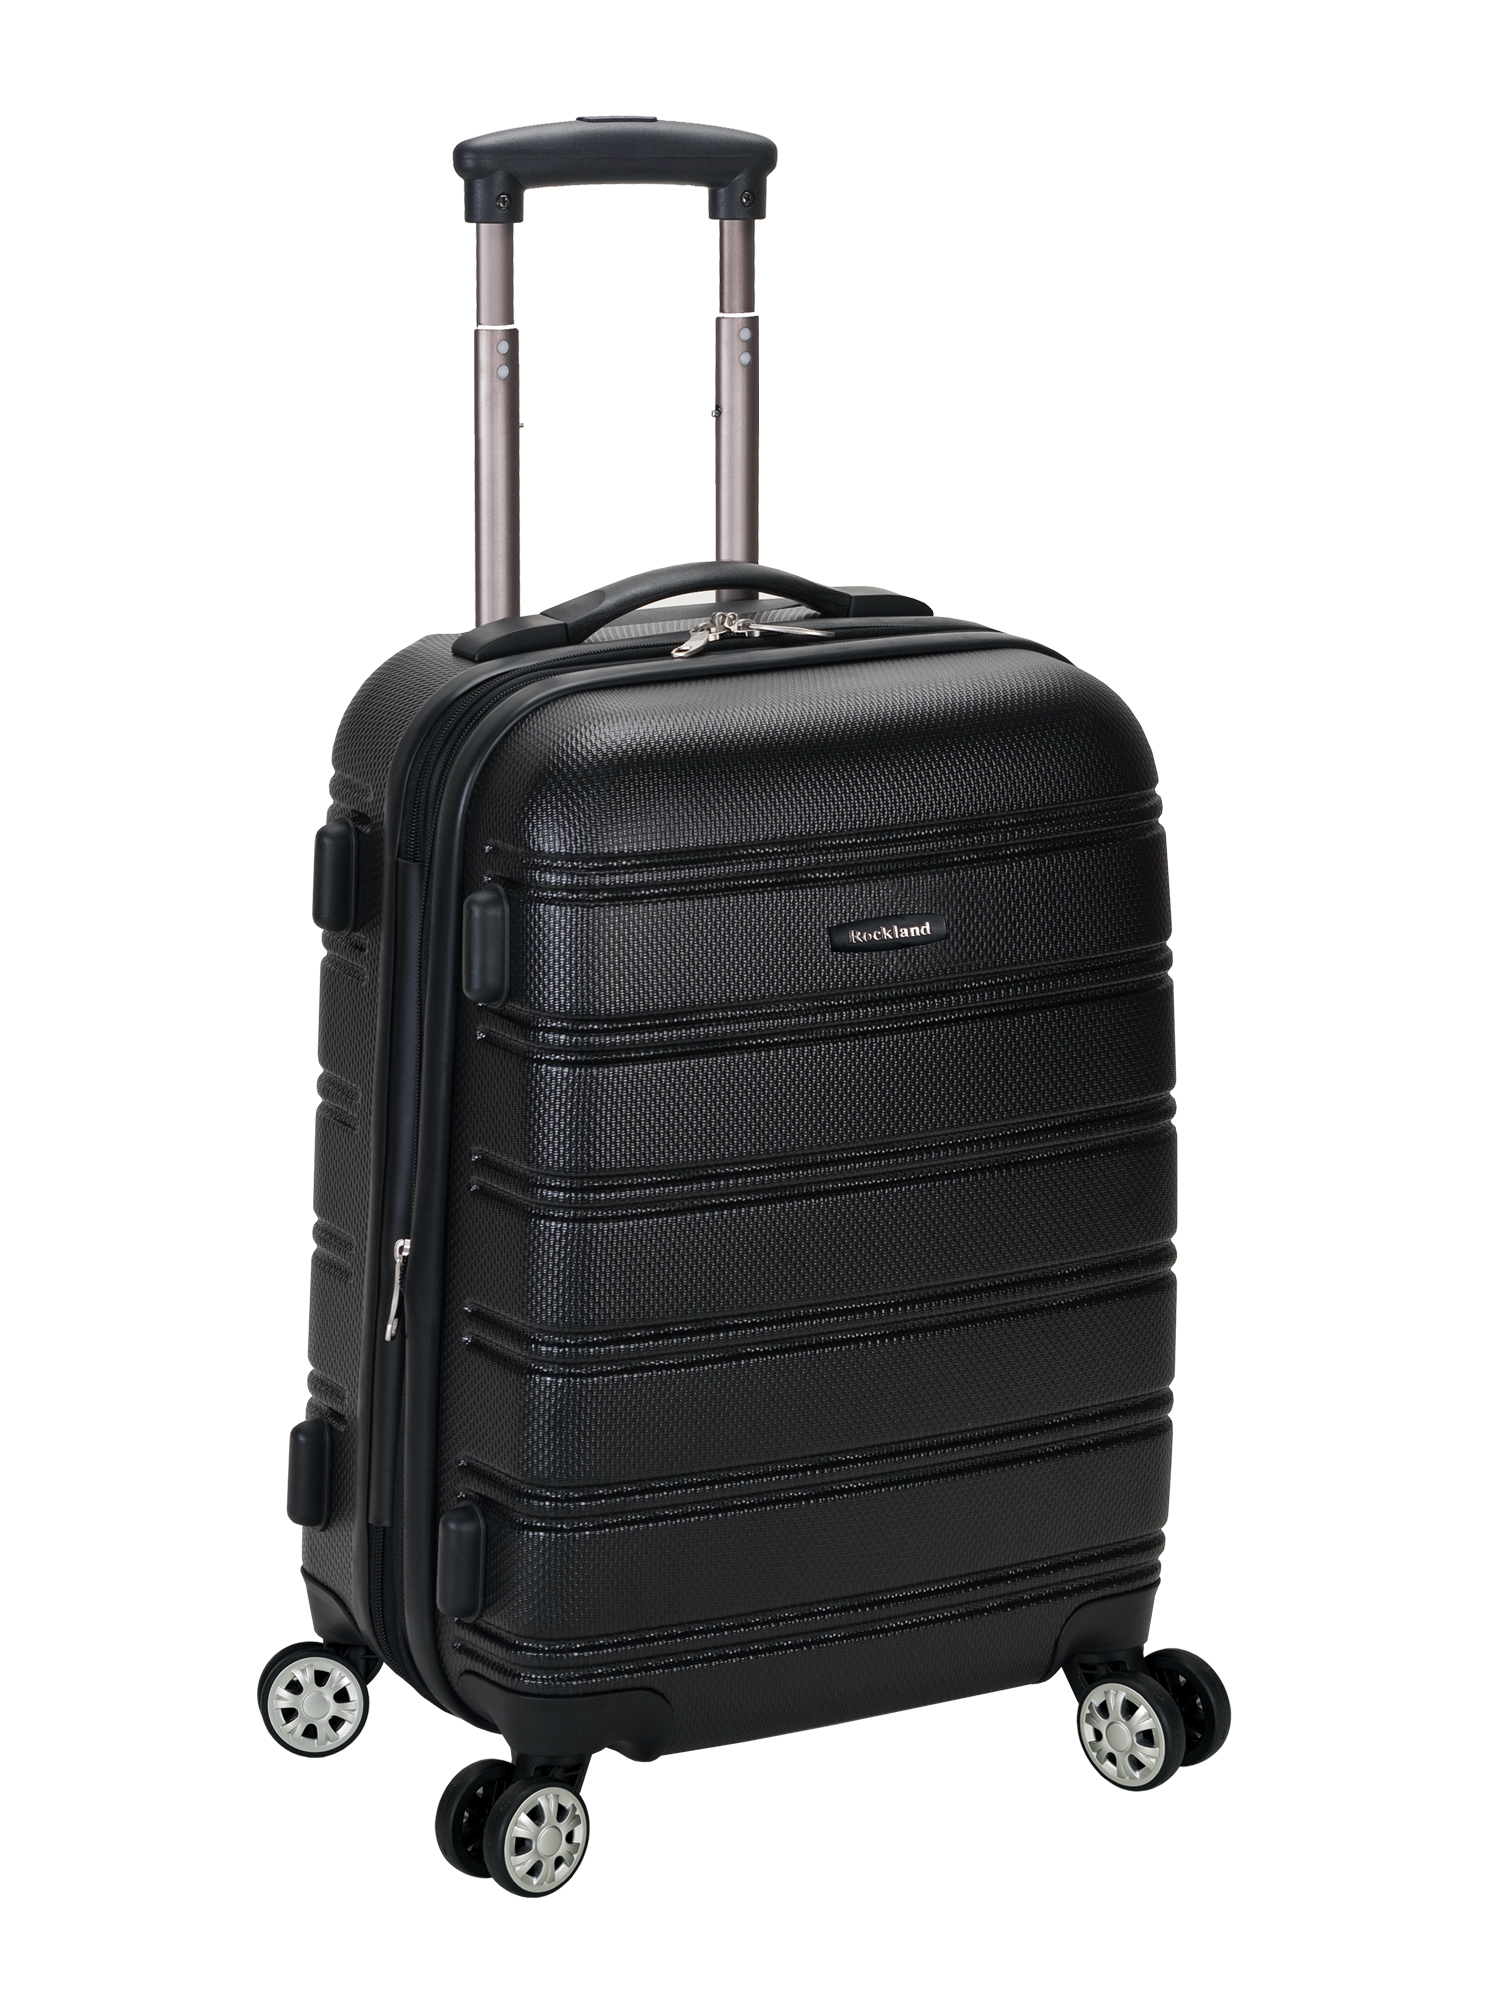 Travel Luggage Melbourne Rockland Luggage Melbourne 20 Quot Expandable Carry On